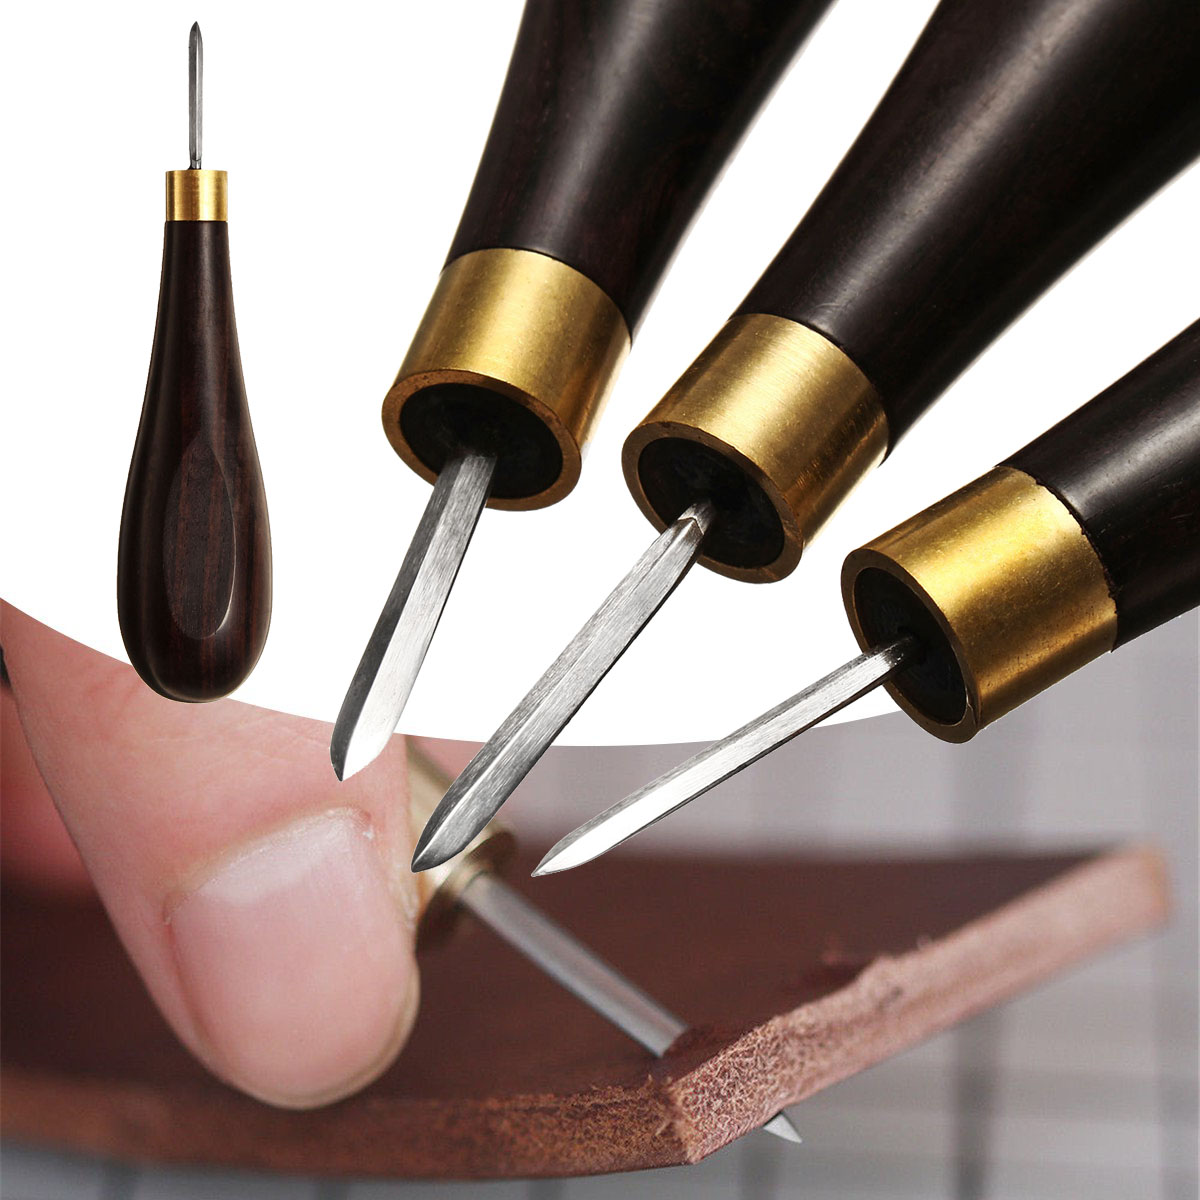 WUTA Leather Craft Tool Diamond Stitching Awl Ebony Blackwood Handle Leather Craft Sewing Awl Kit